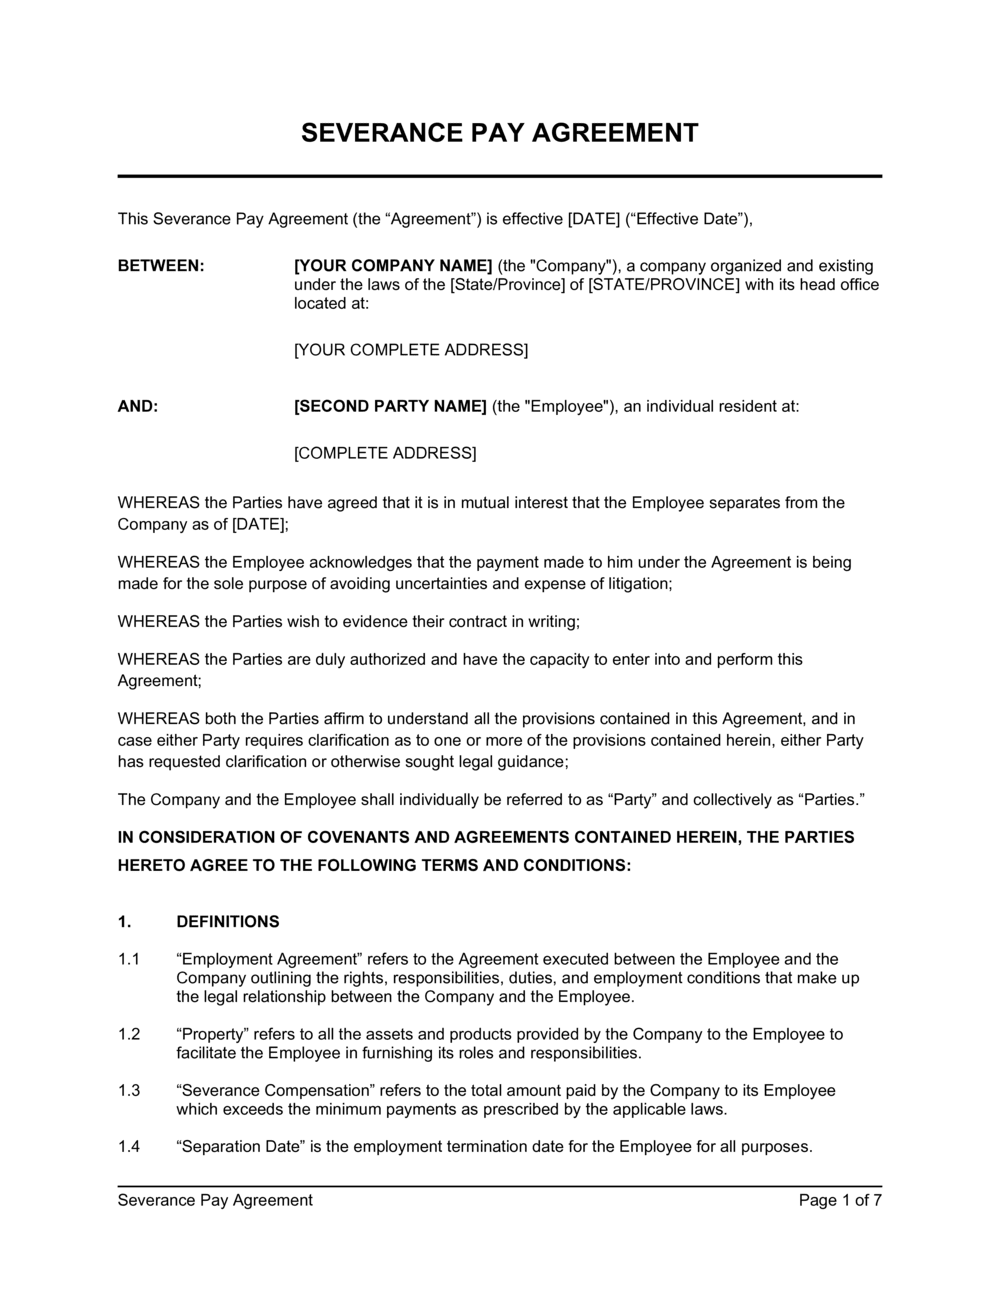 Business-in-a-Box's Severance Pay Agreement Template